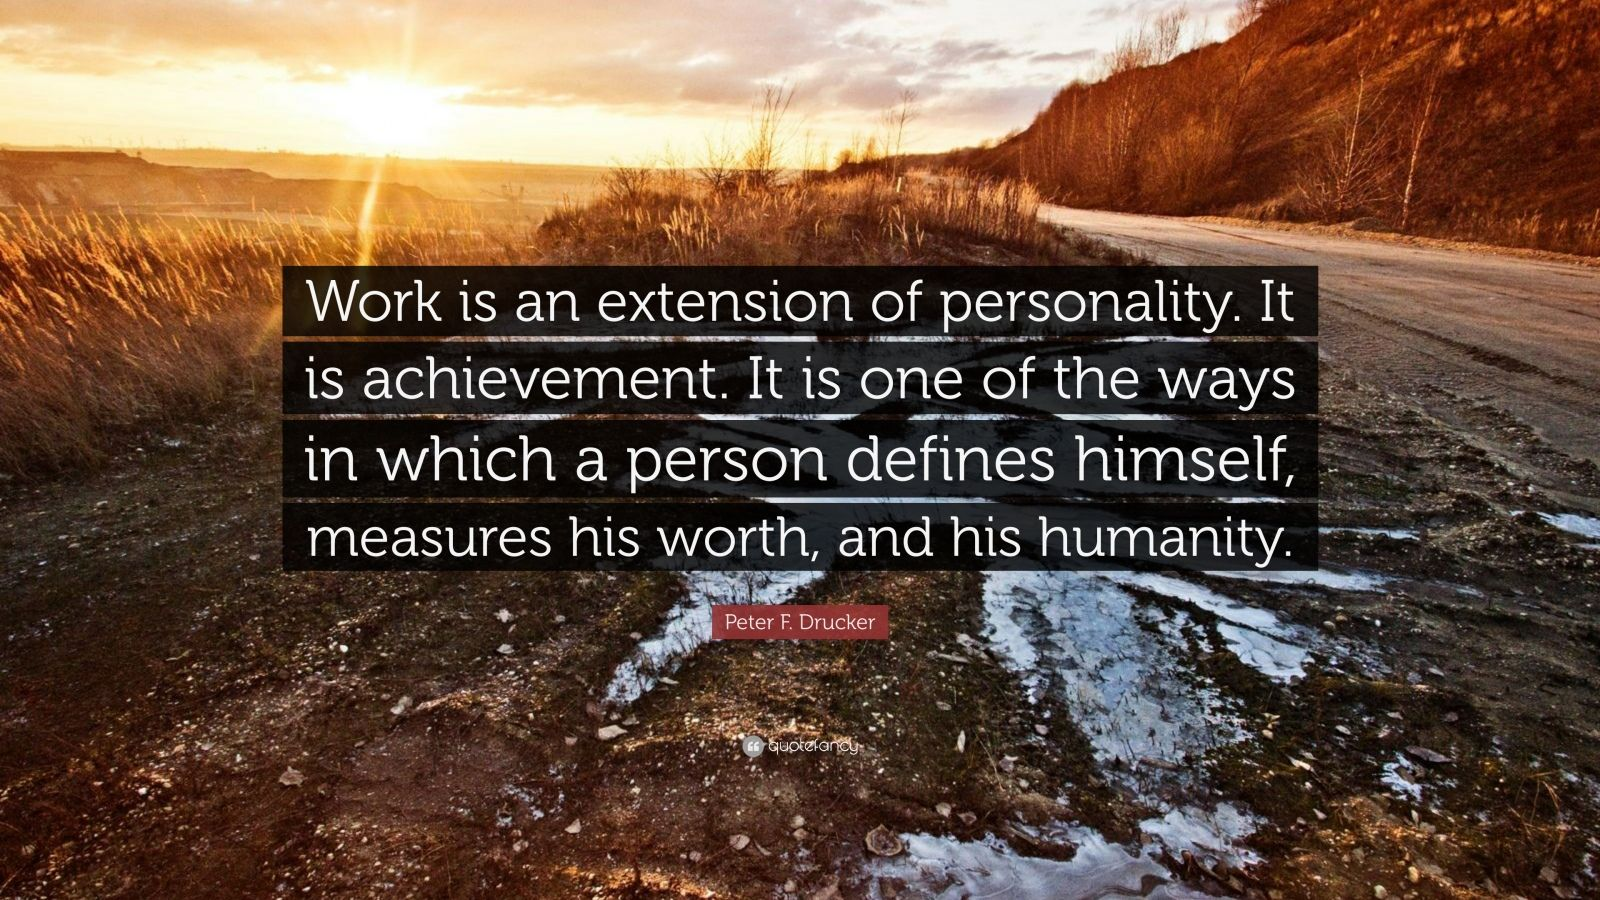 """Peter F. Drucker Quote: """"Work is an extension of personality. It is achievement. It is one of the ways in which a person defines himself, measures his worth, and his humanity."""""""